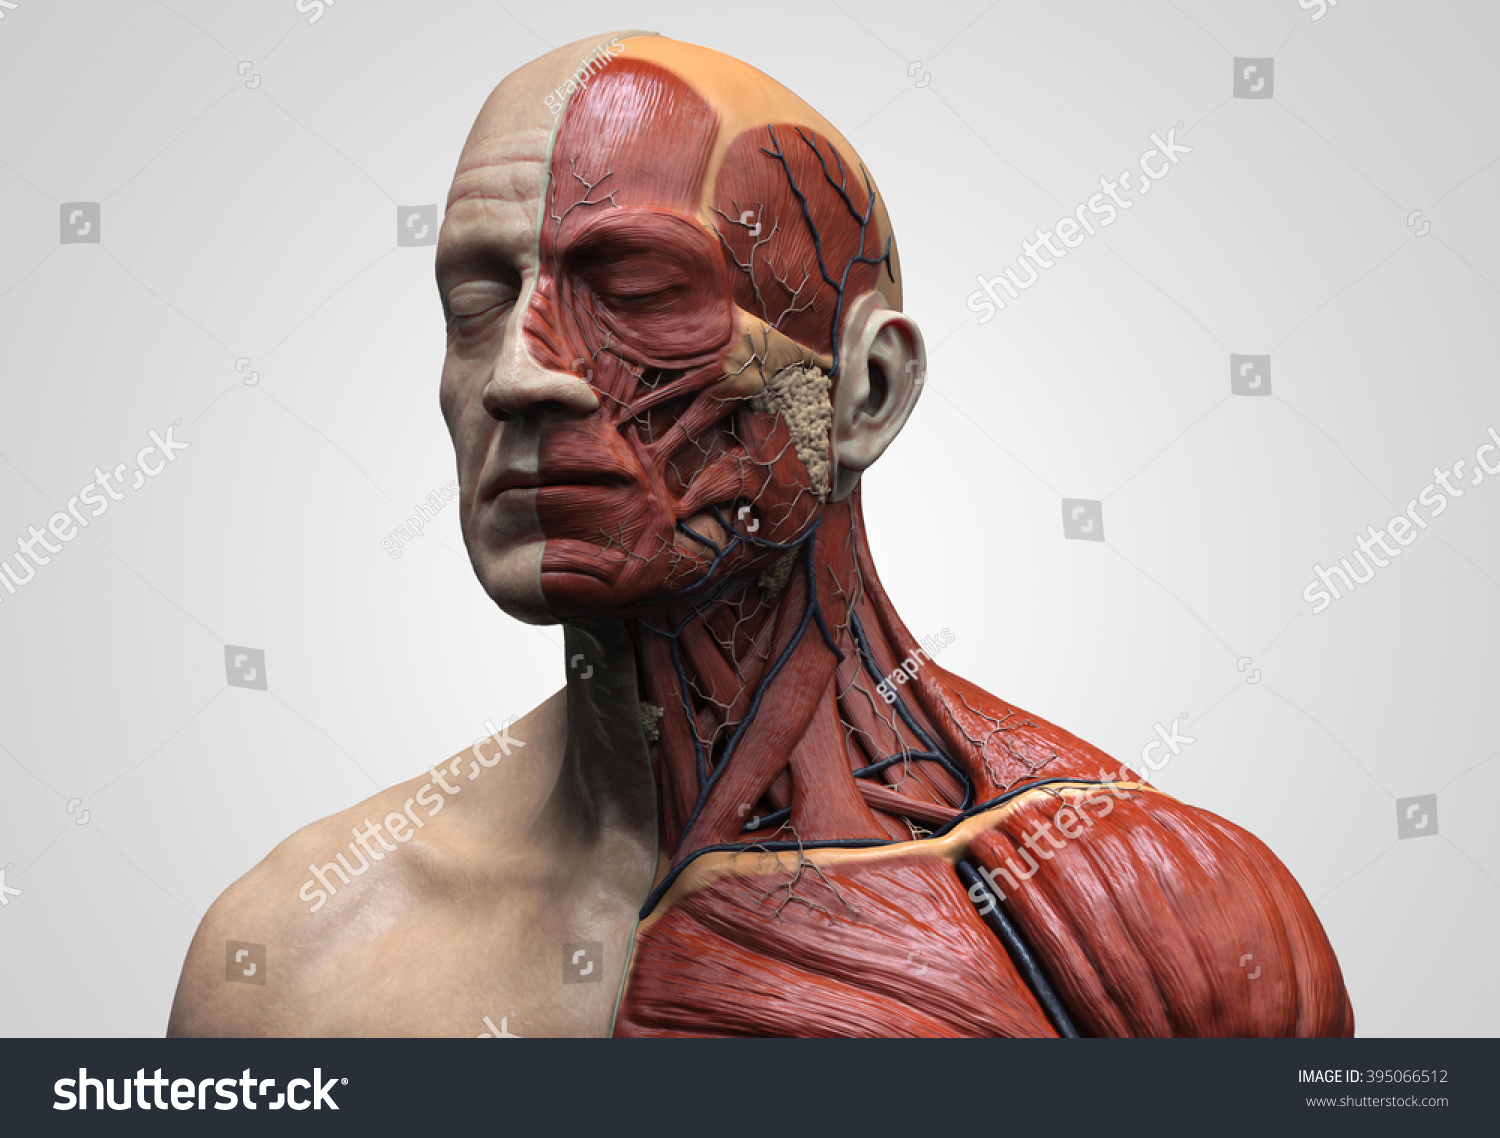 Human Anatomy Muscle Anatomy Face Neck Stock Illustration 395066512